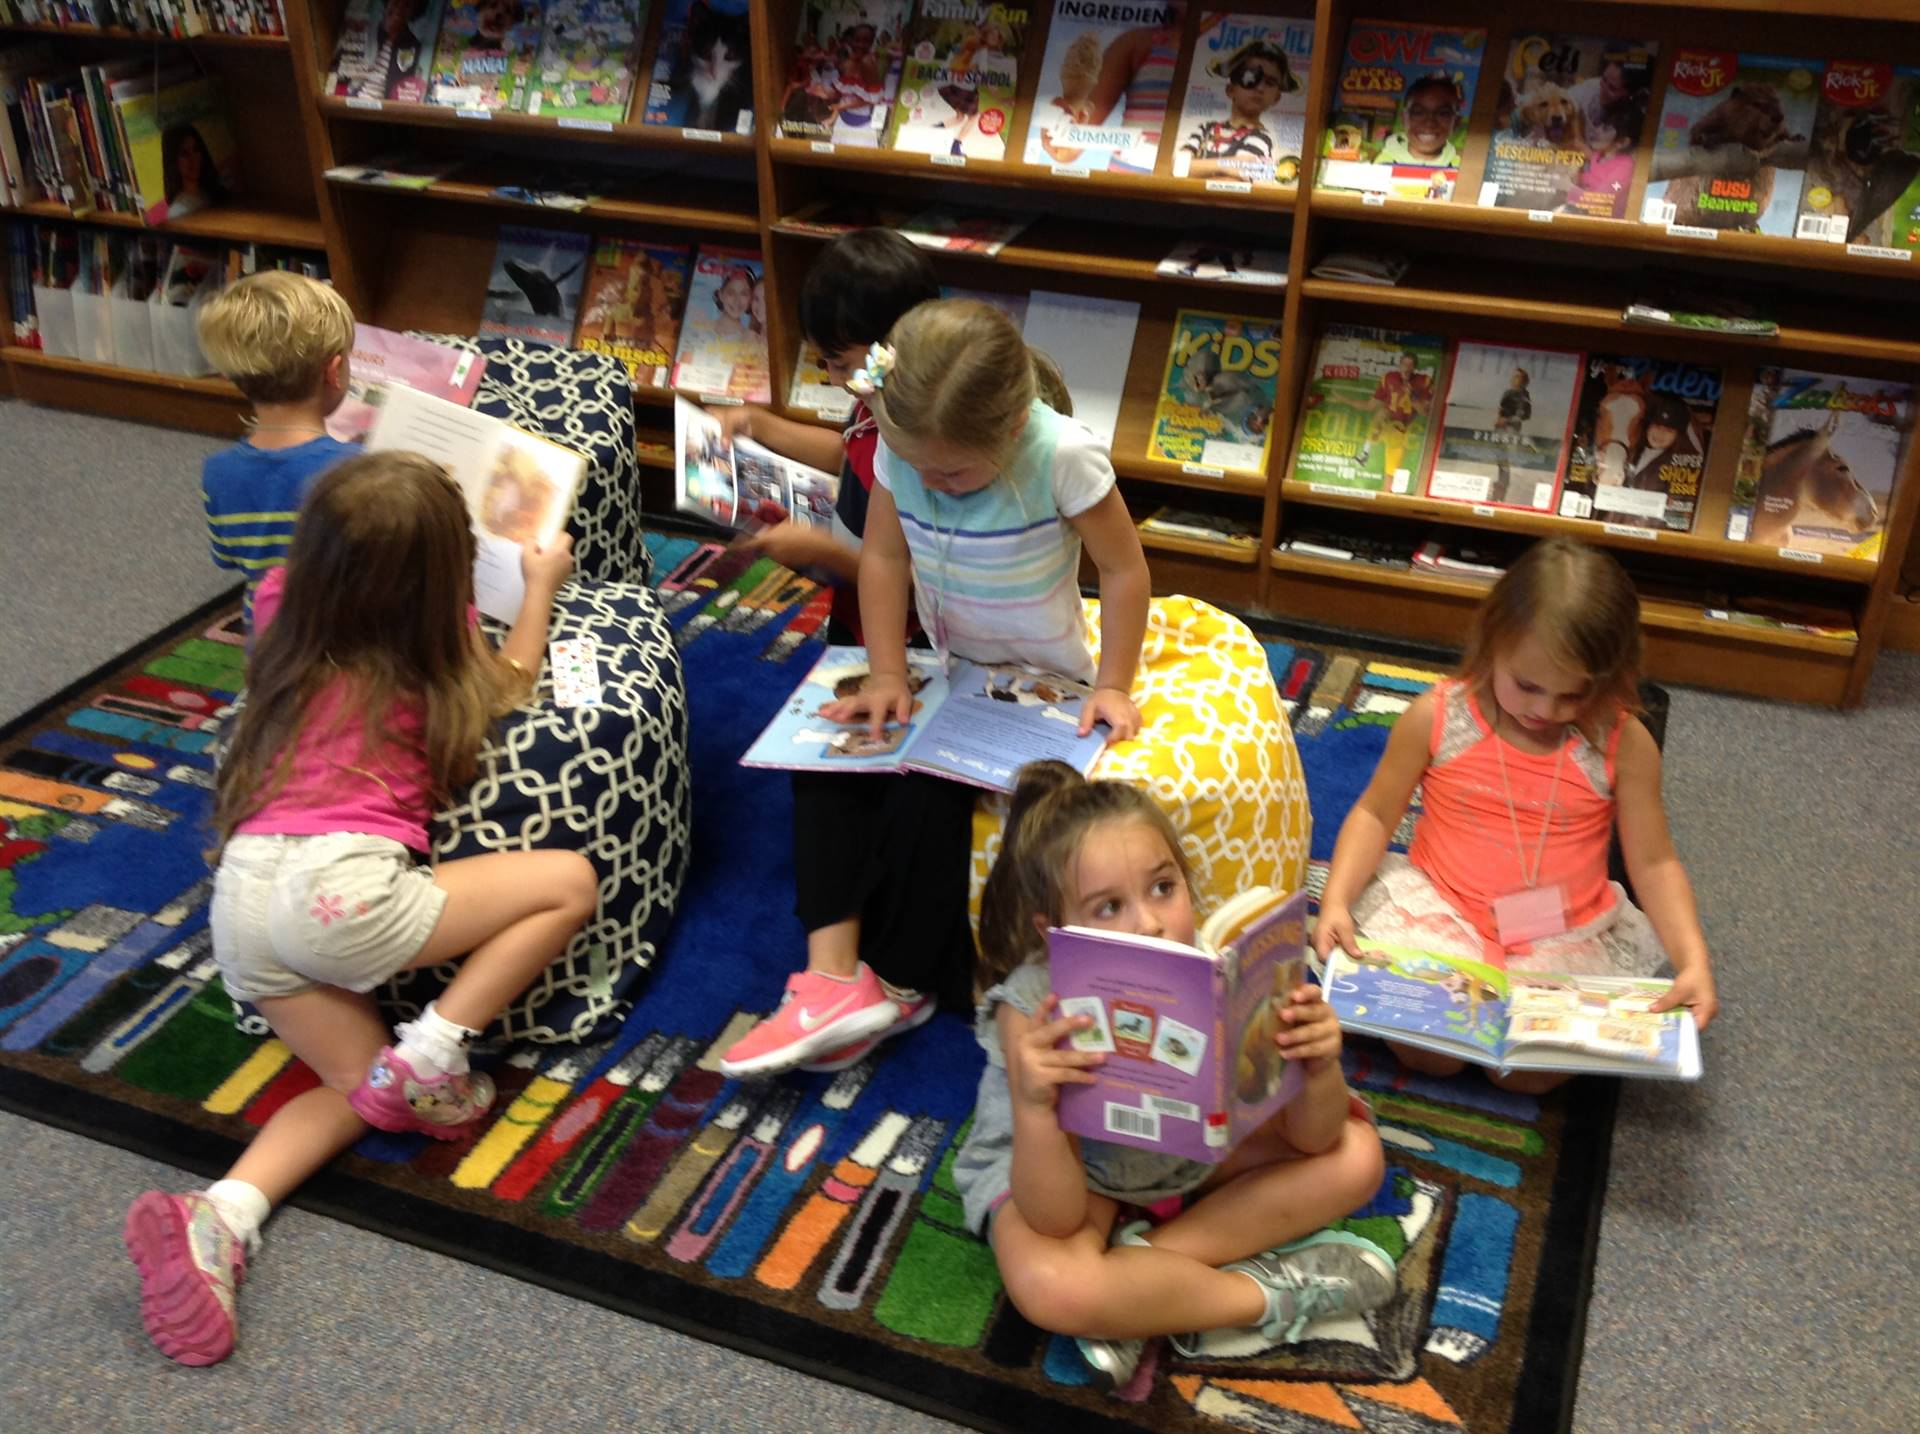 Kindergarteners look at books in the library